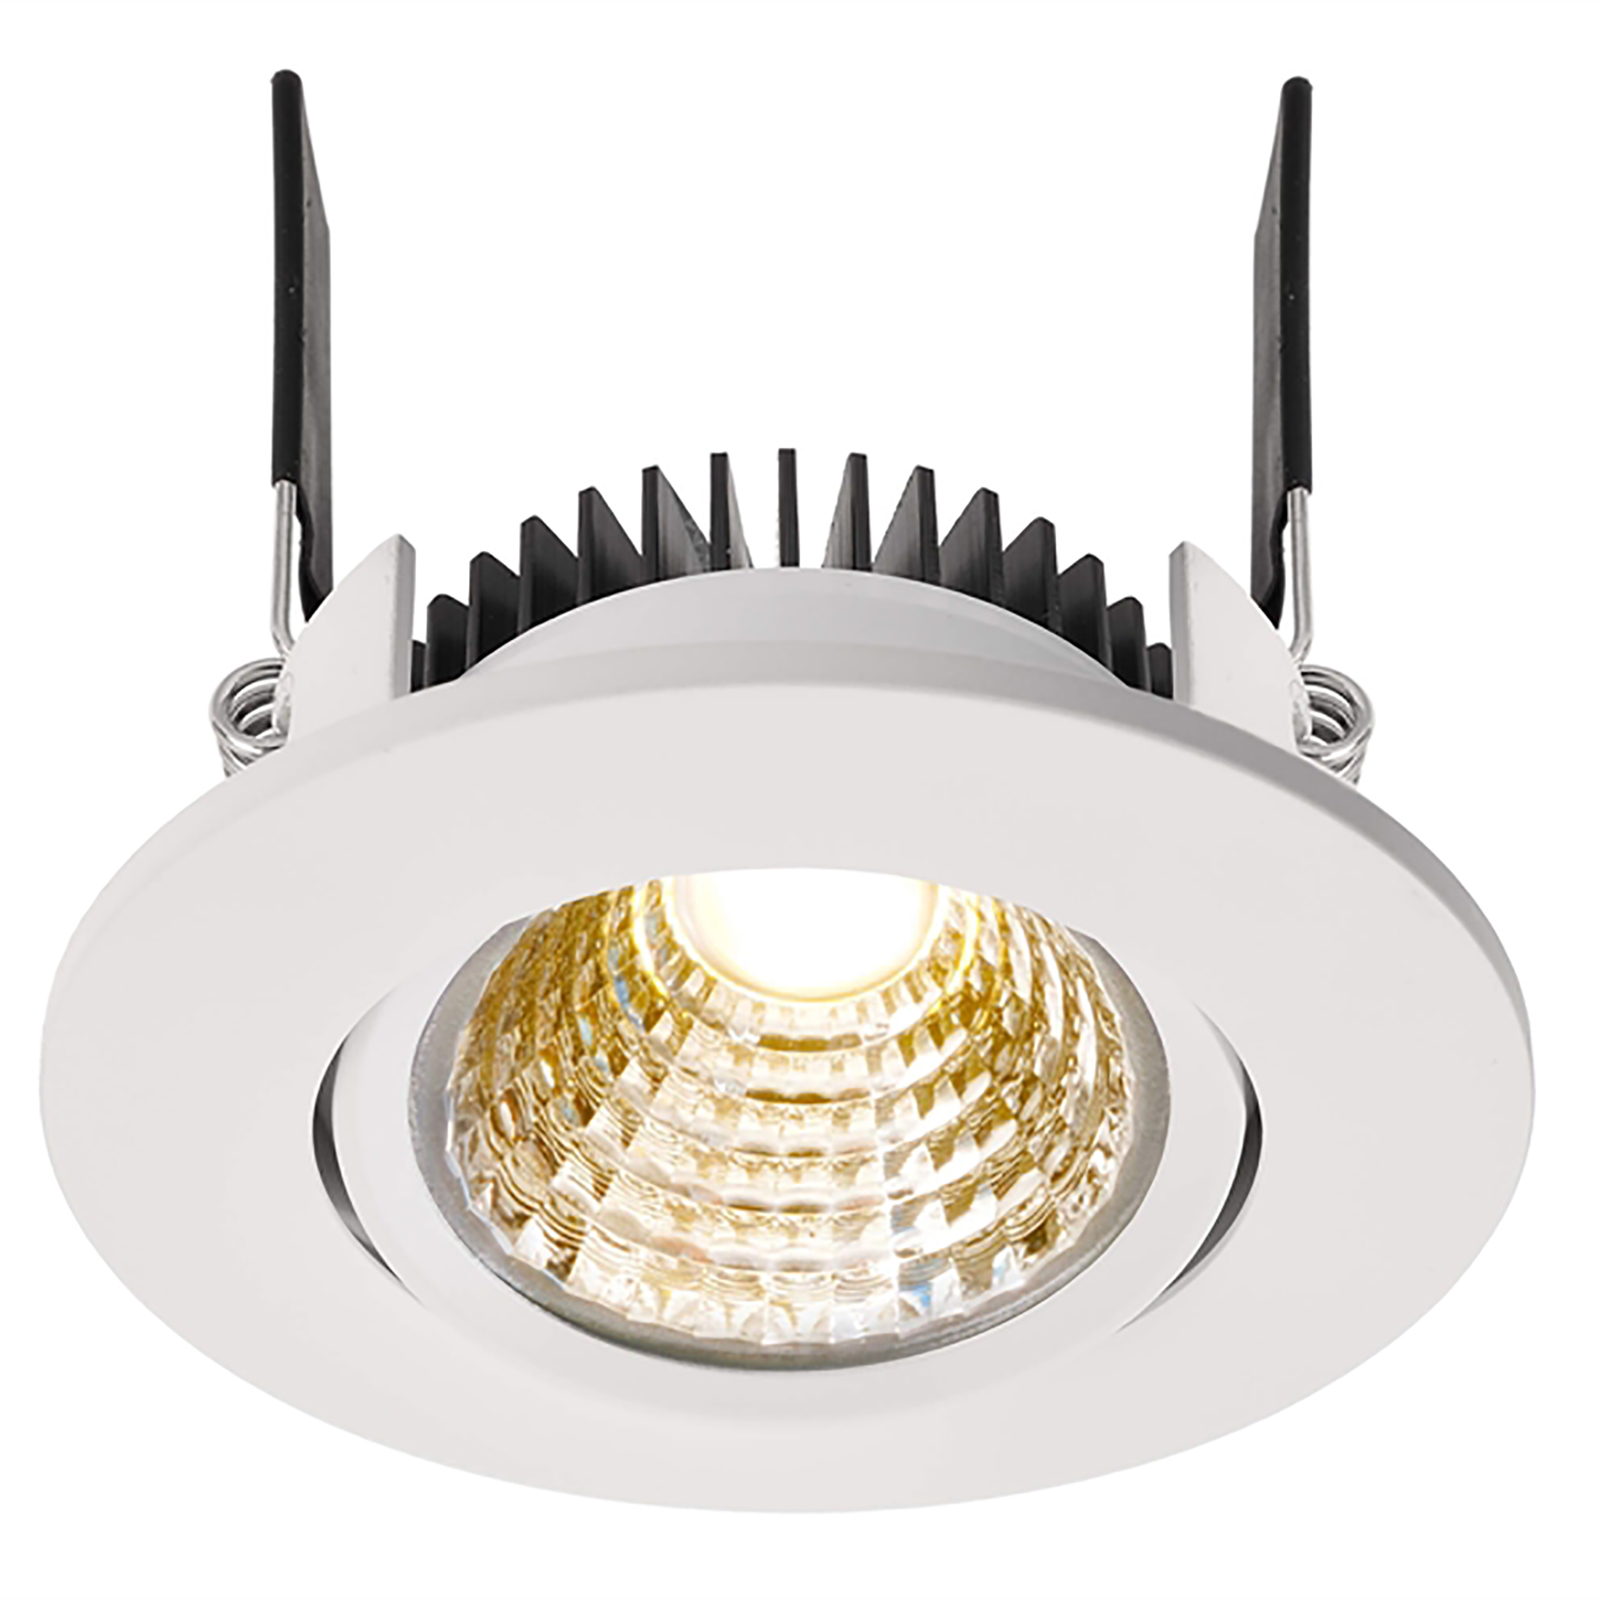 Adjustable spotlight LED 9W recessed 7cm dimmable ra90 lights showcase 24V